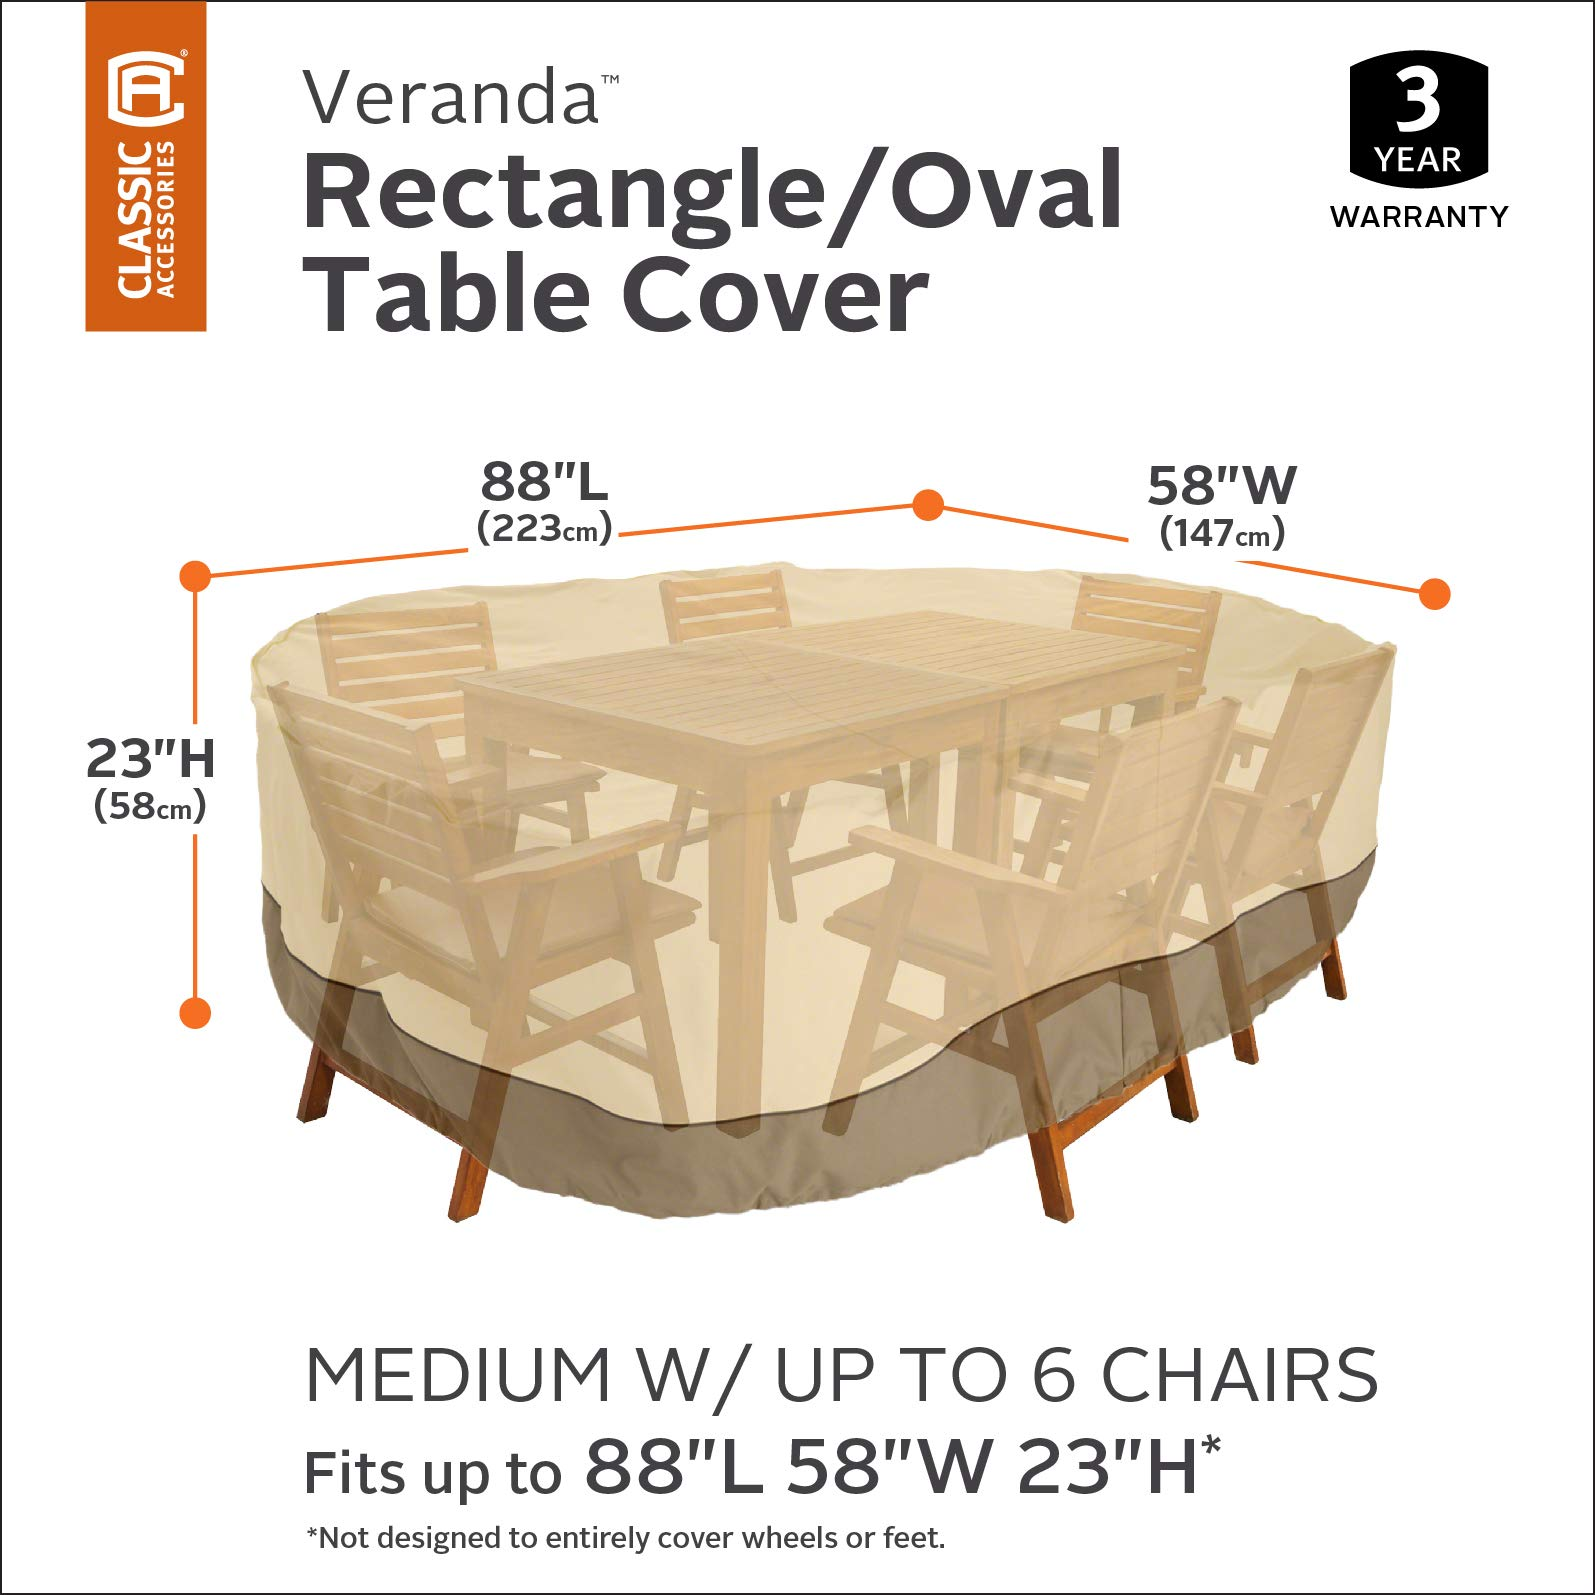 Classic Accessories Veranda Patio Table Cover fits Hampton Bay Oak Cliff 7-Piece Metal Outdoor Dining Set by Classic Accessories (Image #2)